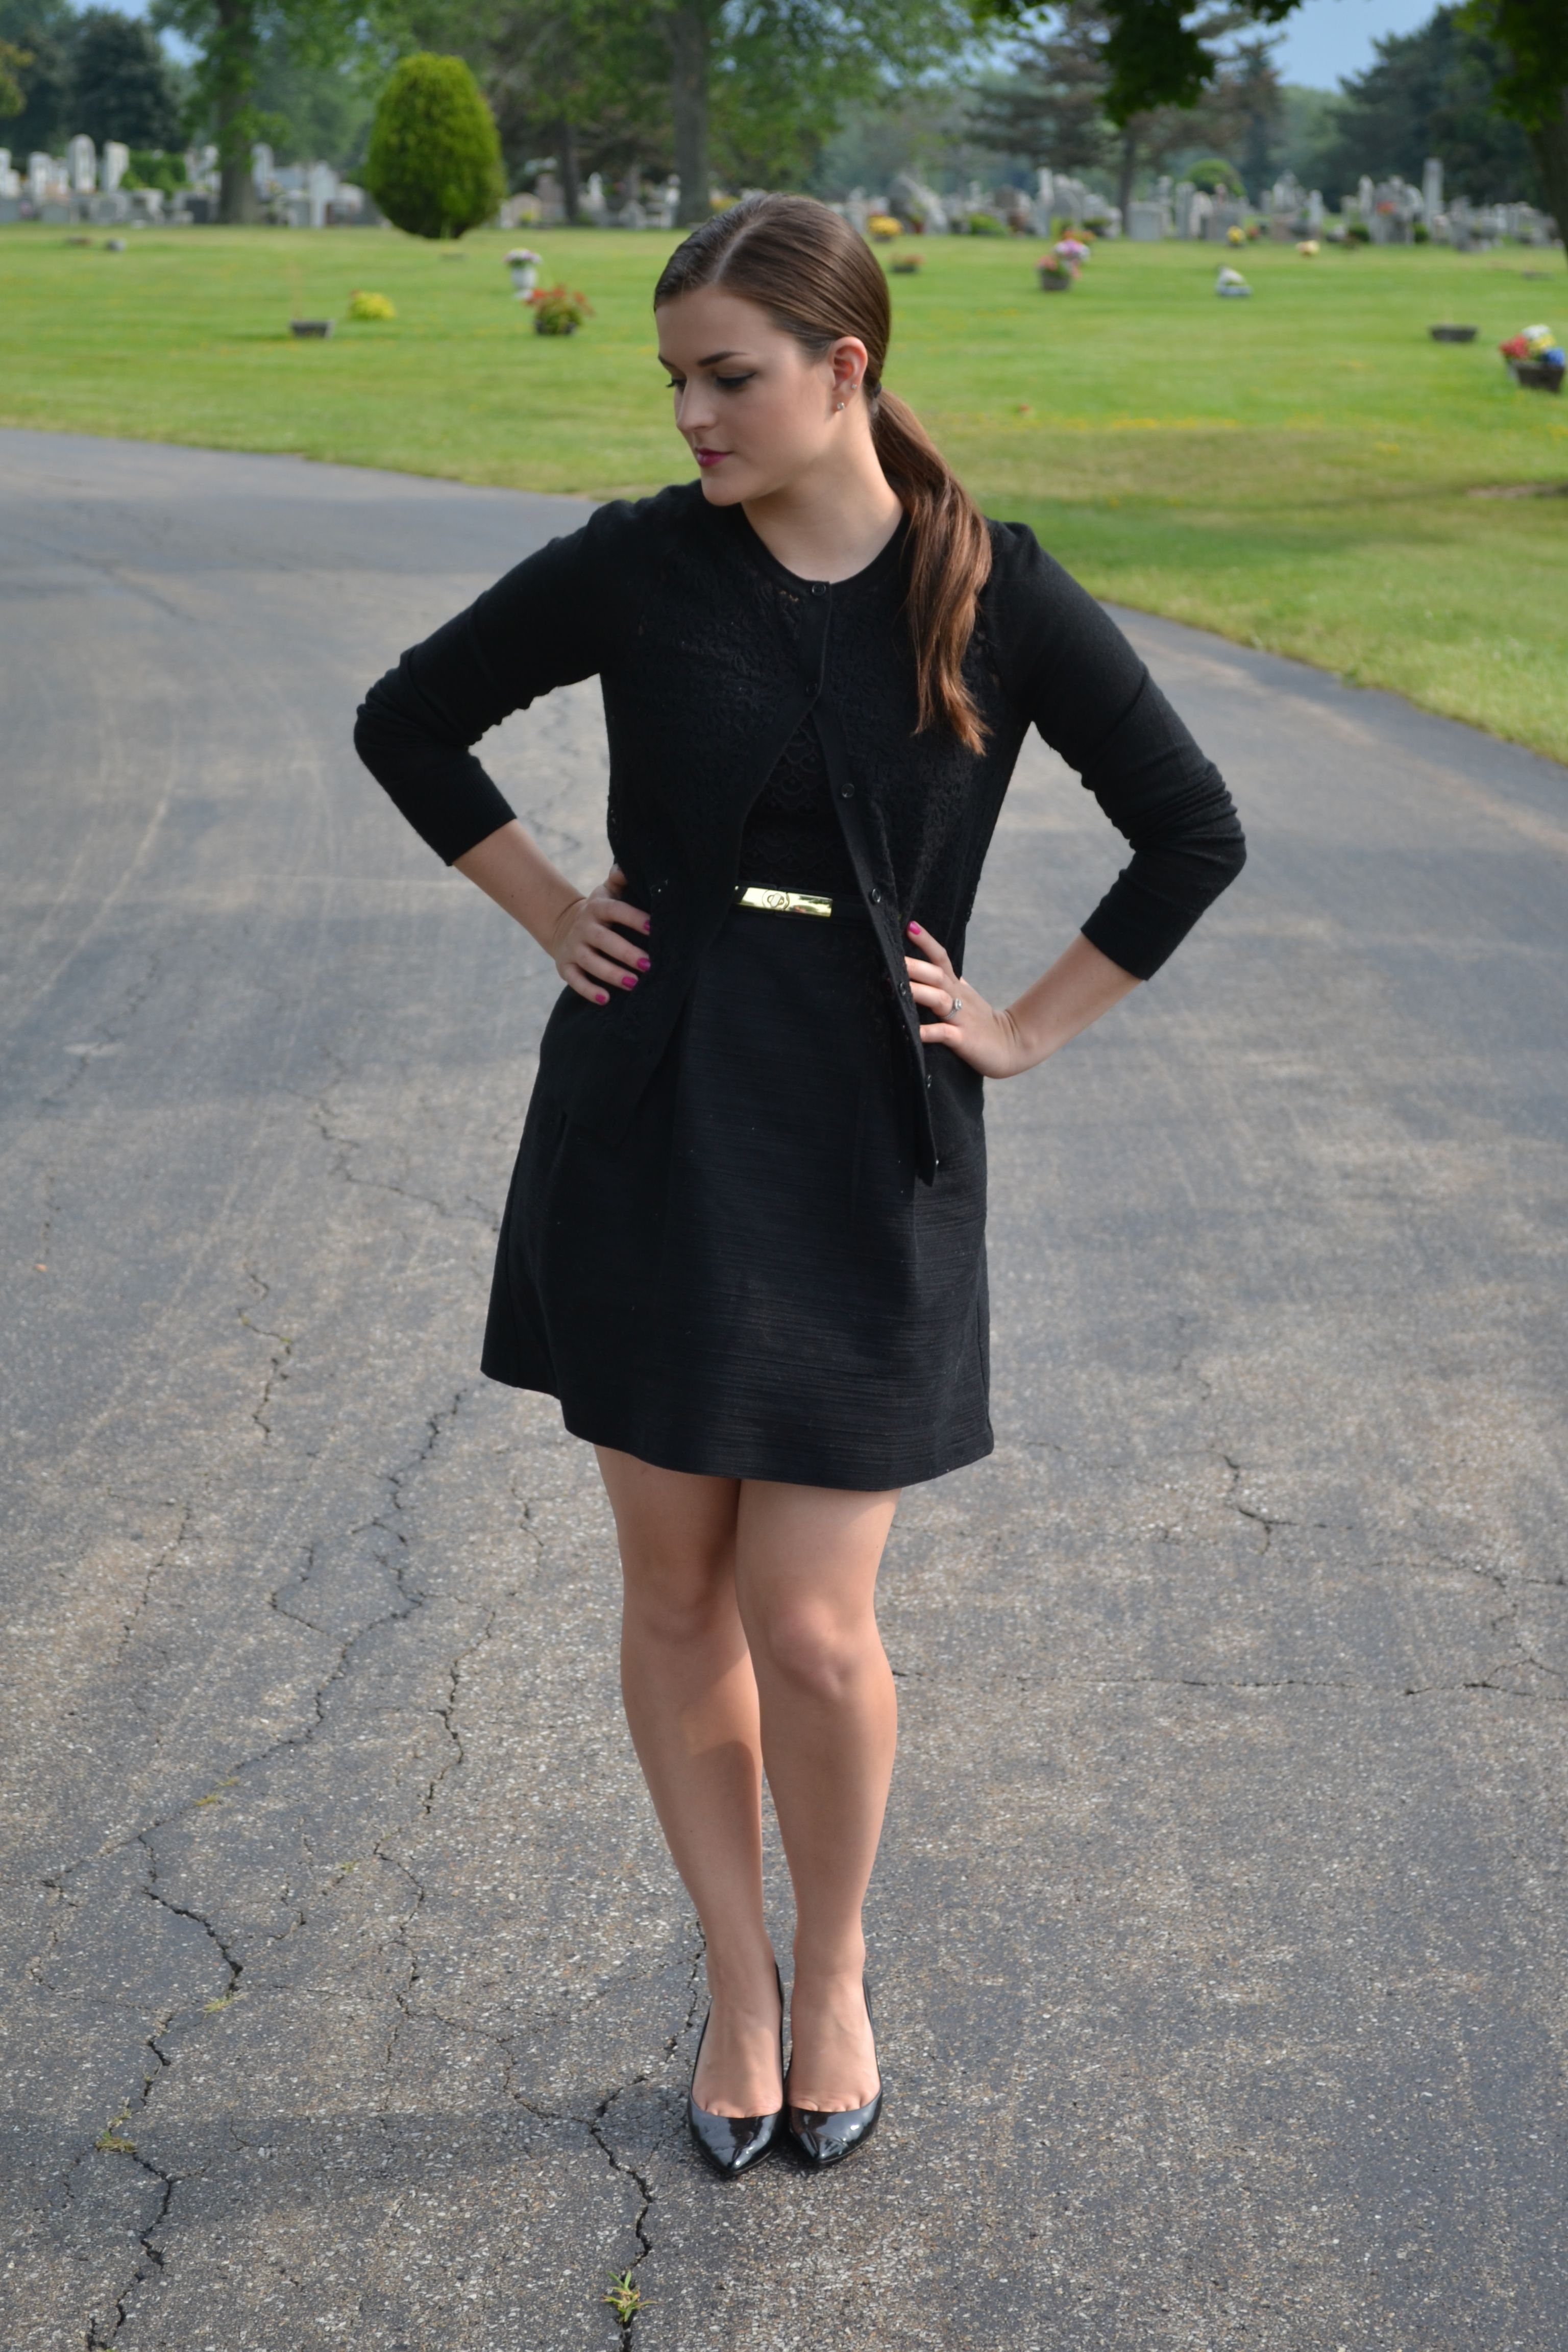 Bare Legs Cemetary And Funeral Bild Funeral Outfit Professional Outfits Women Funeral Attire [ 4608 x 3072 Pixel ]